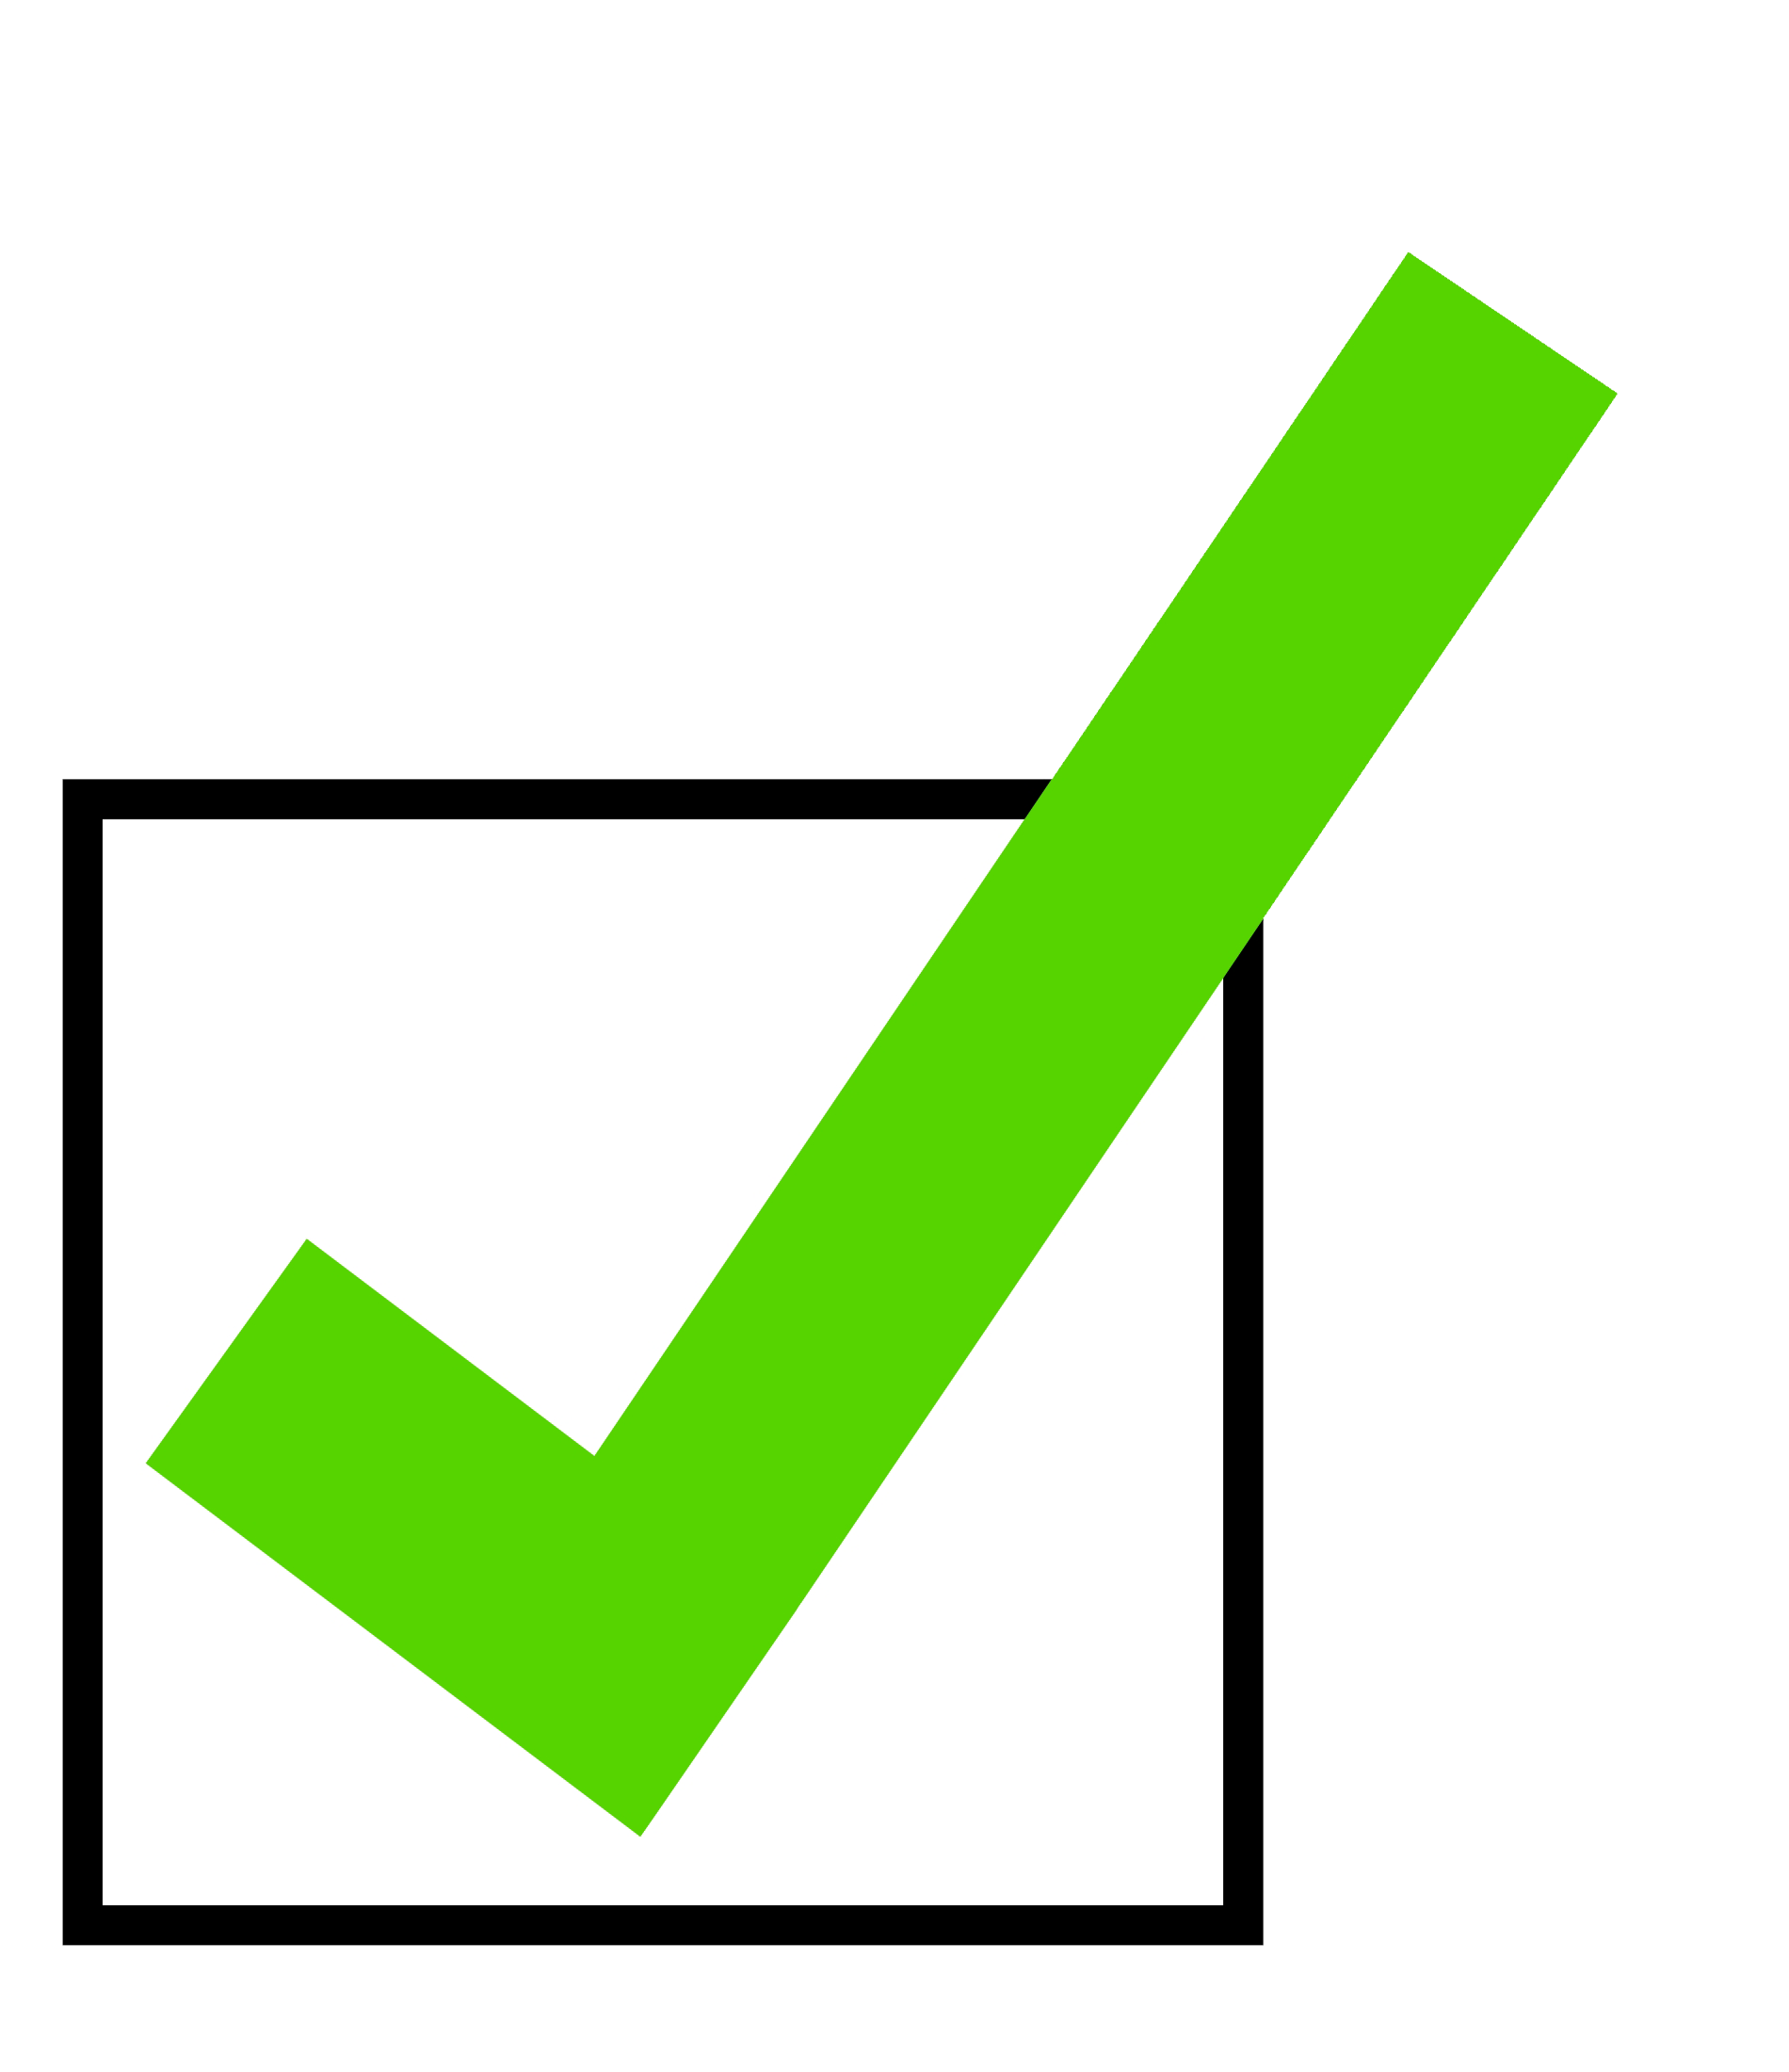 Checkbox Png - Clipart library